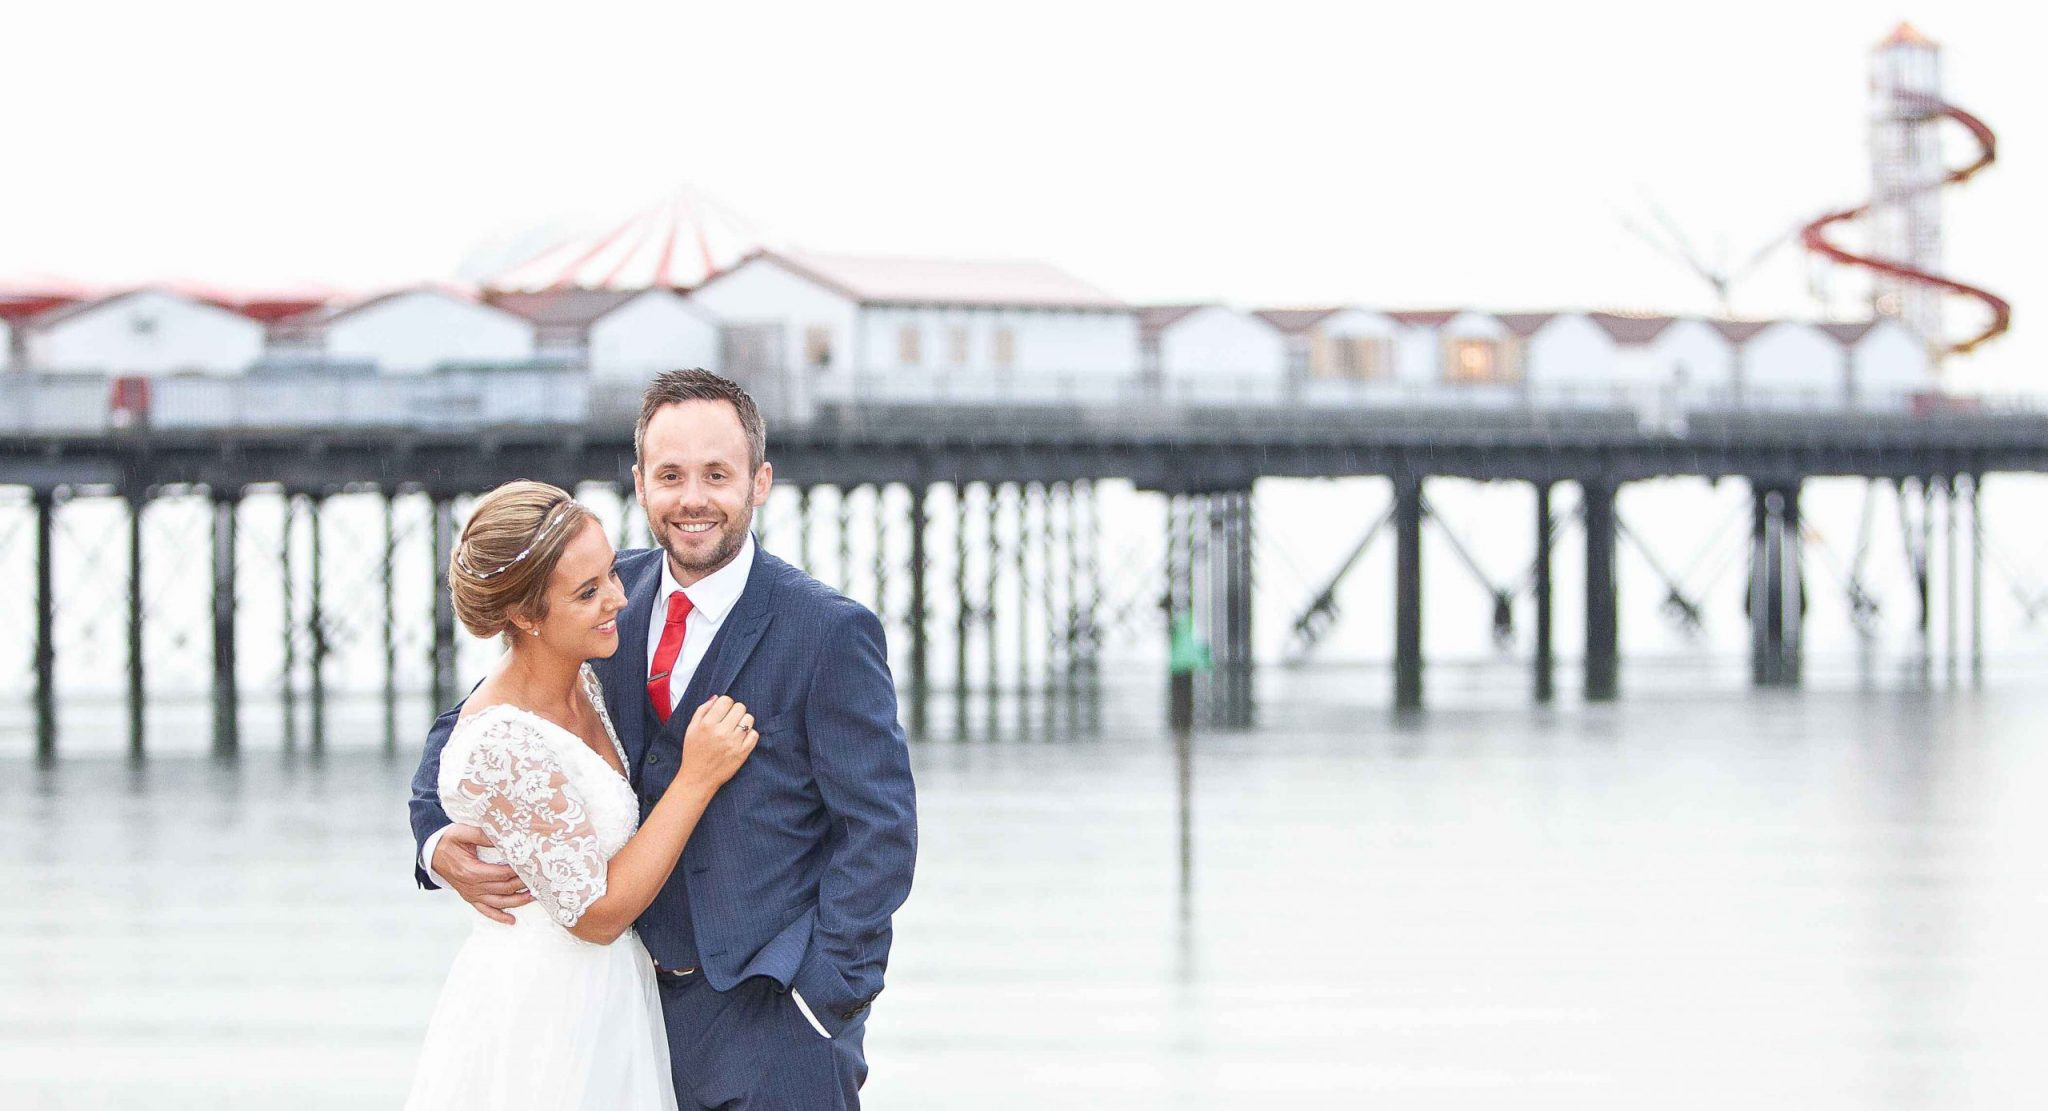 bride and groom portrait in rain on Herne bay beach in front of pier